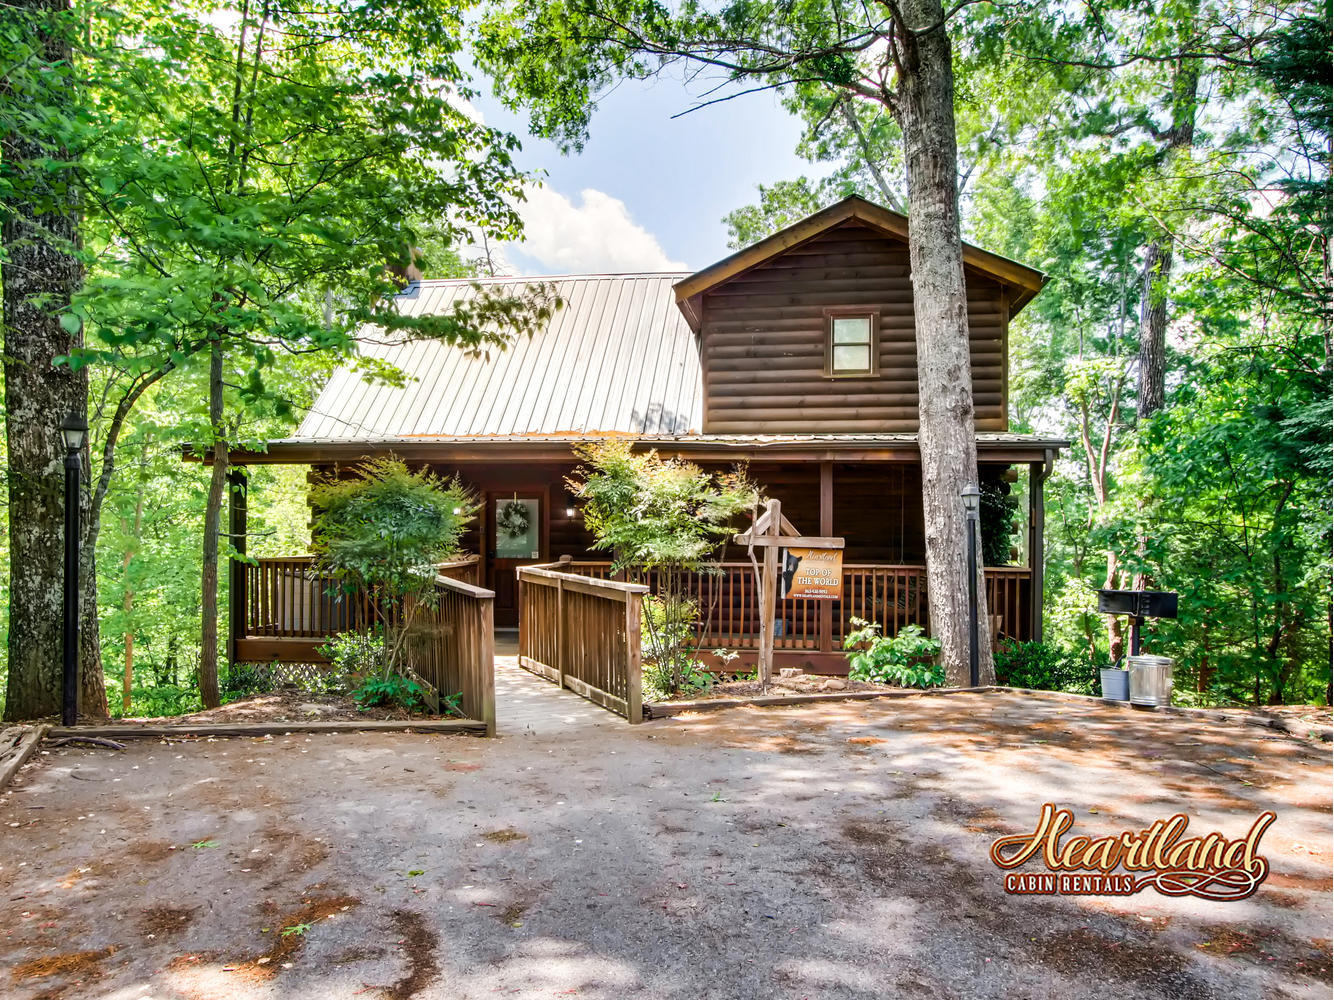 Top Of The World 2 Bedroom Vacation Cabin Rental Pigeon Forge Tn 134958 Find Rentals